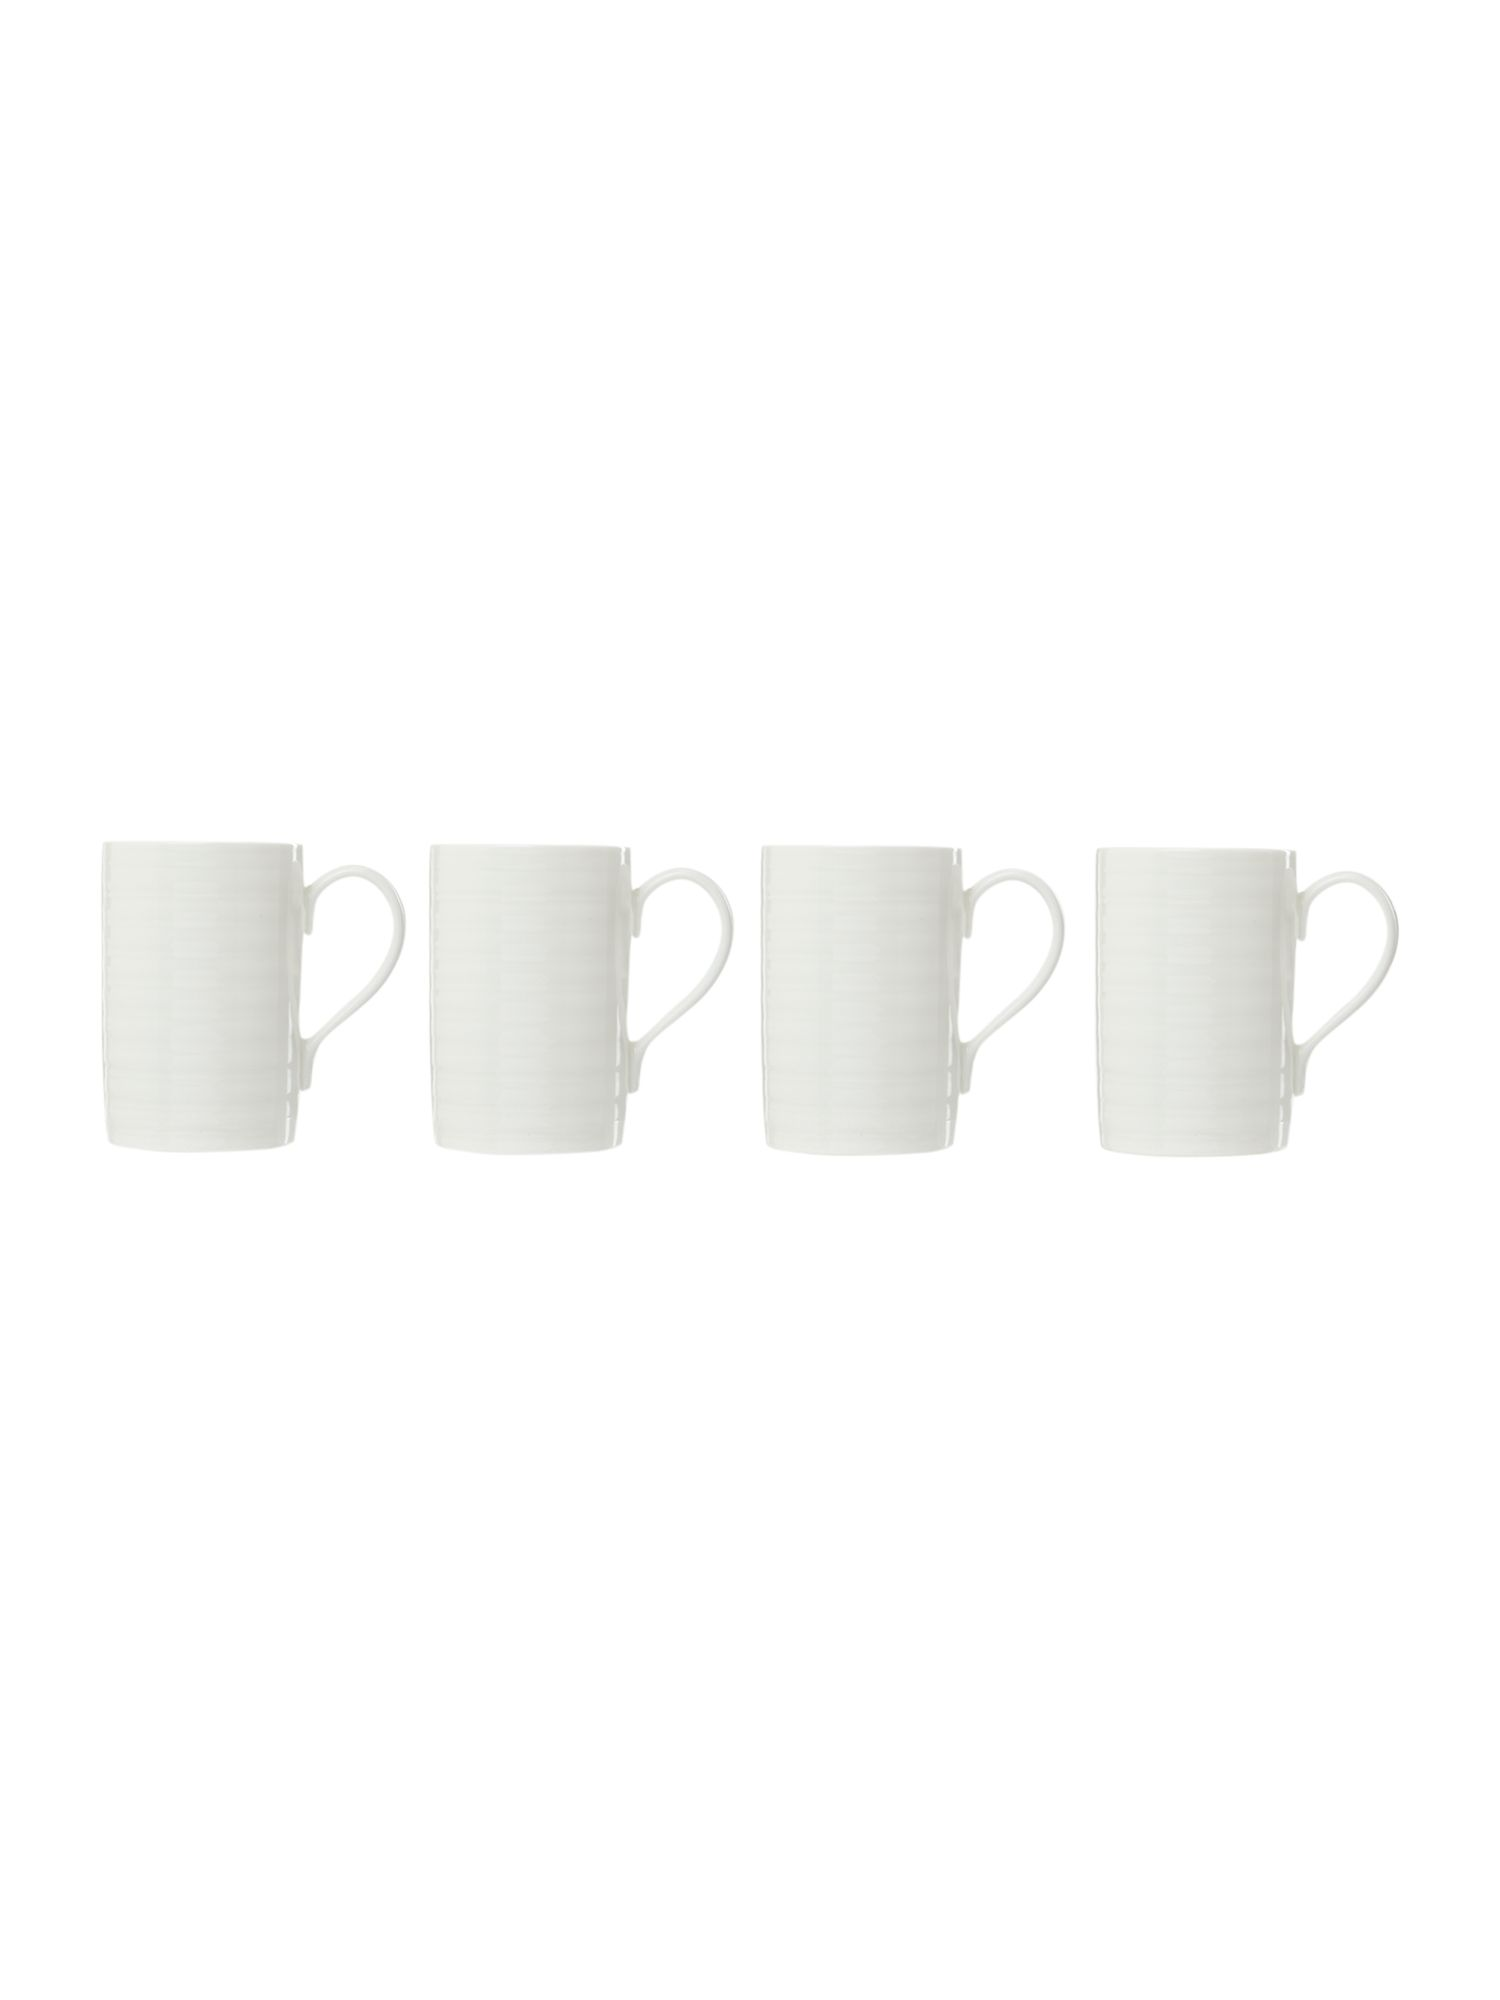 Soho set of 4 mugs